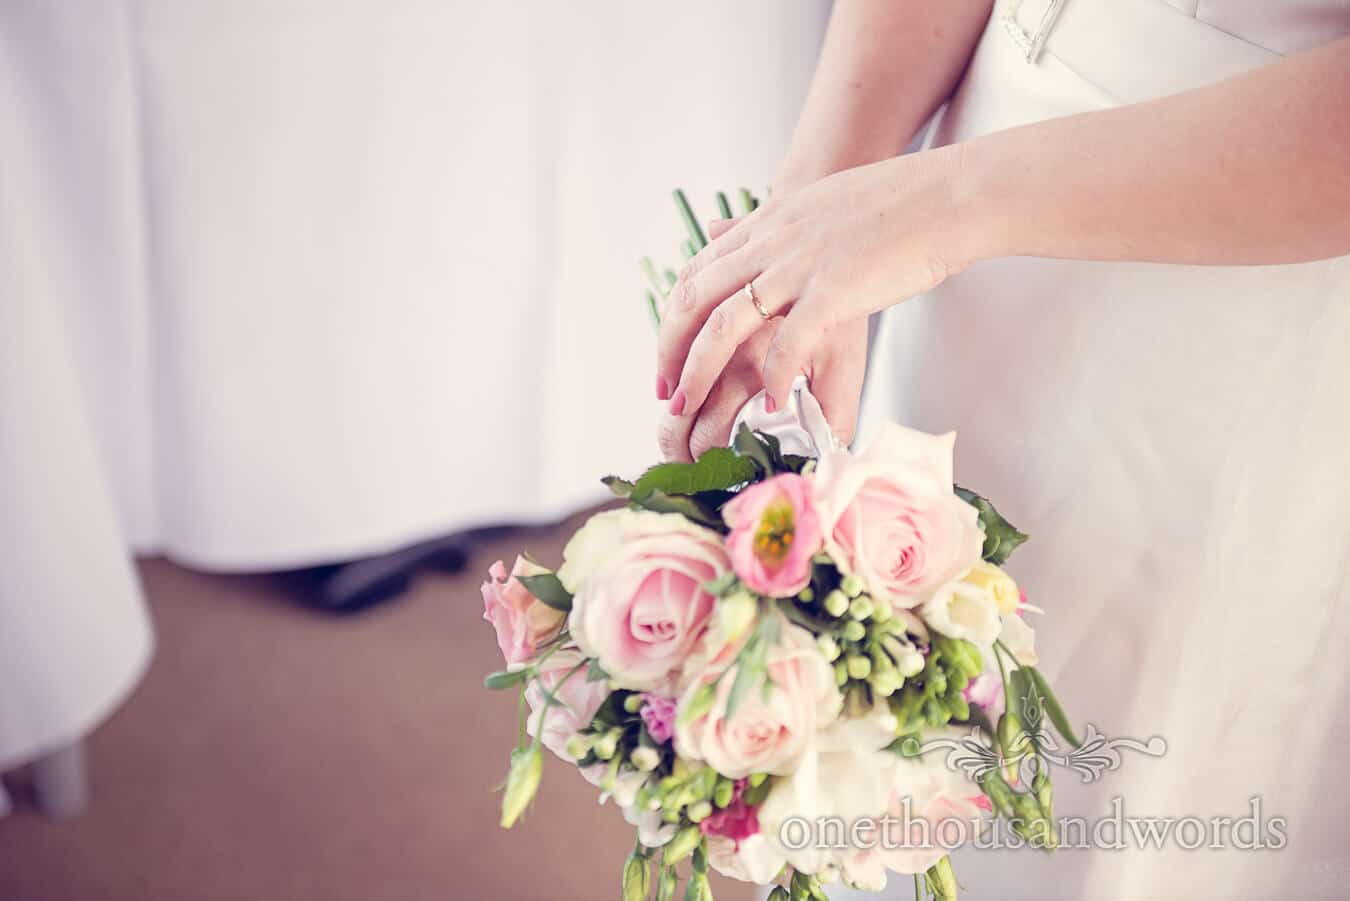 Gold Wedding Ring Photograph with pink wedding flowers